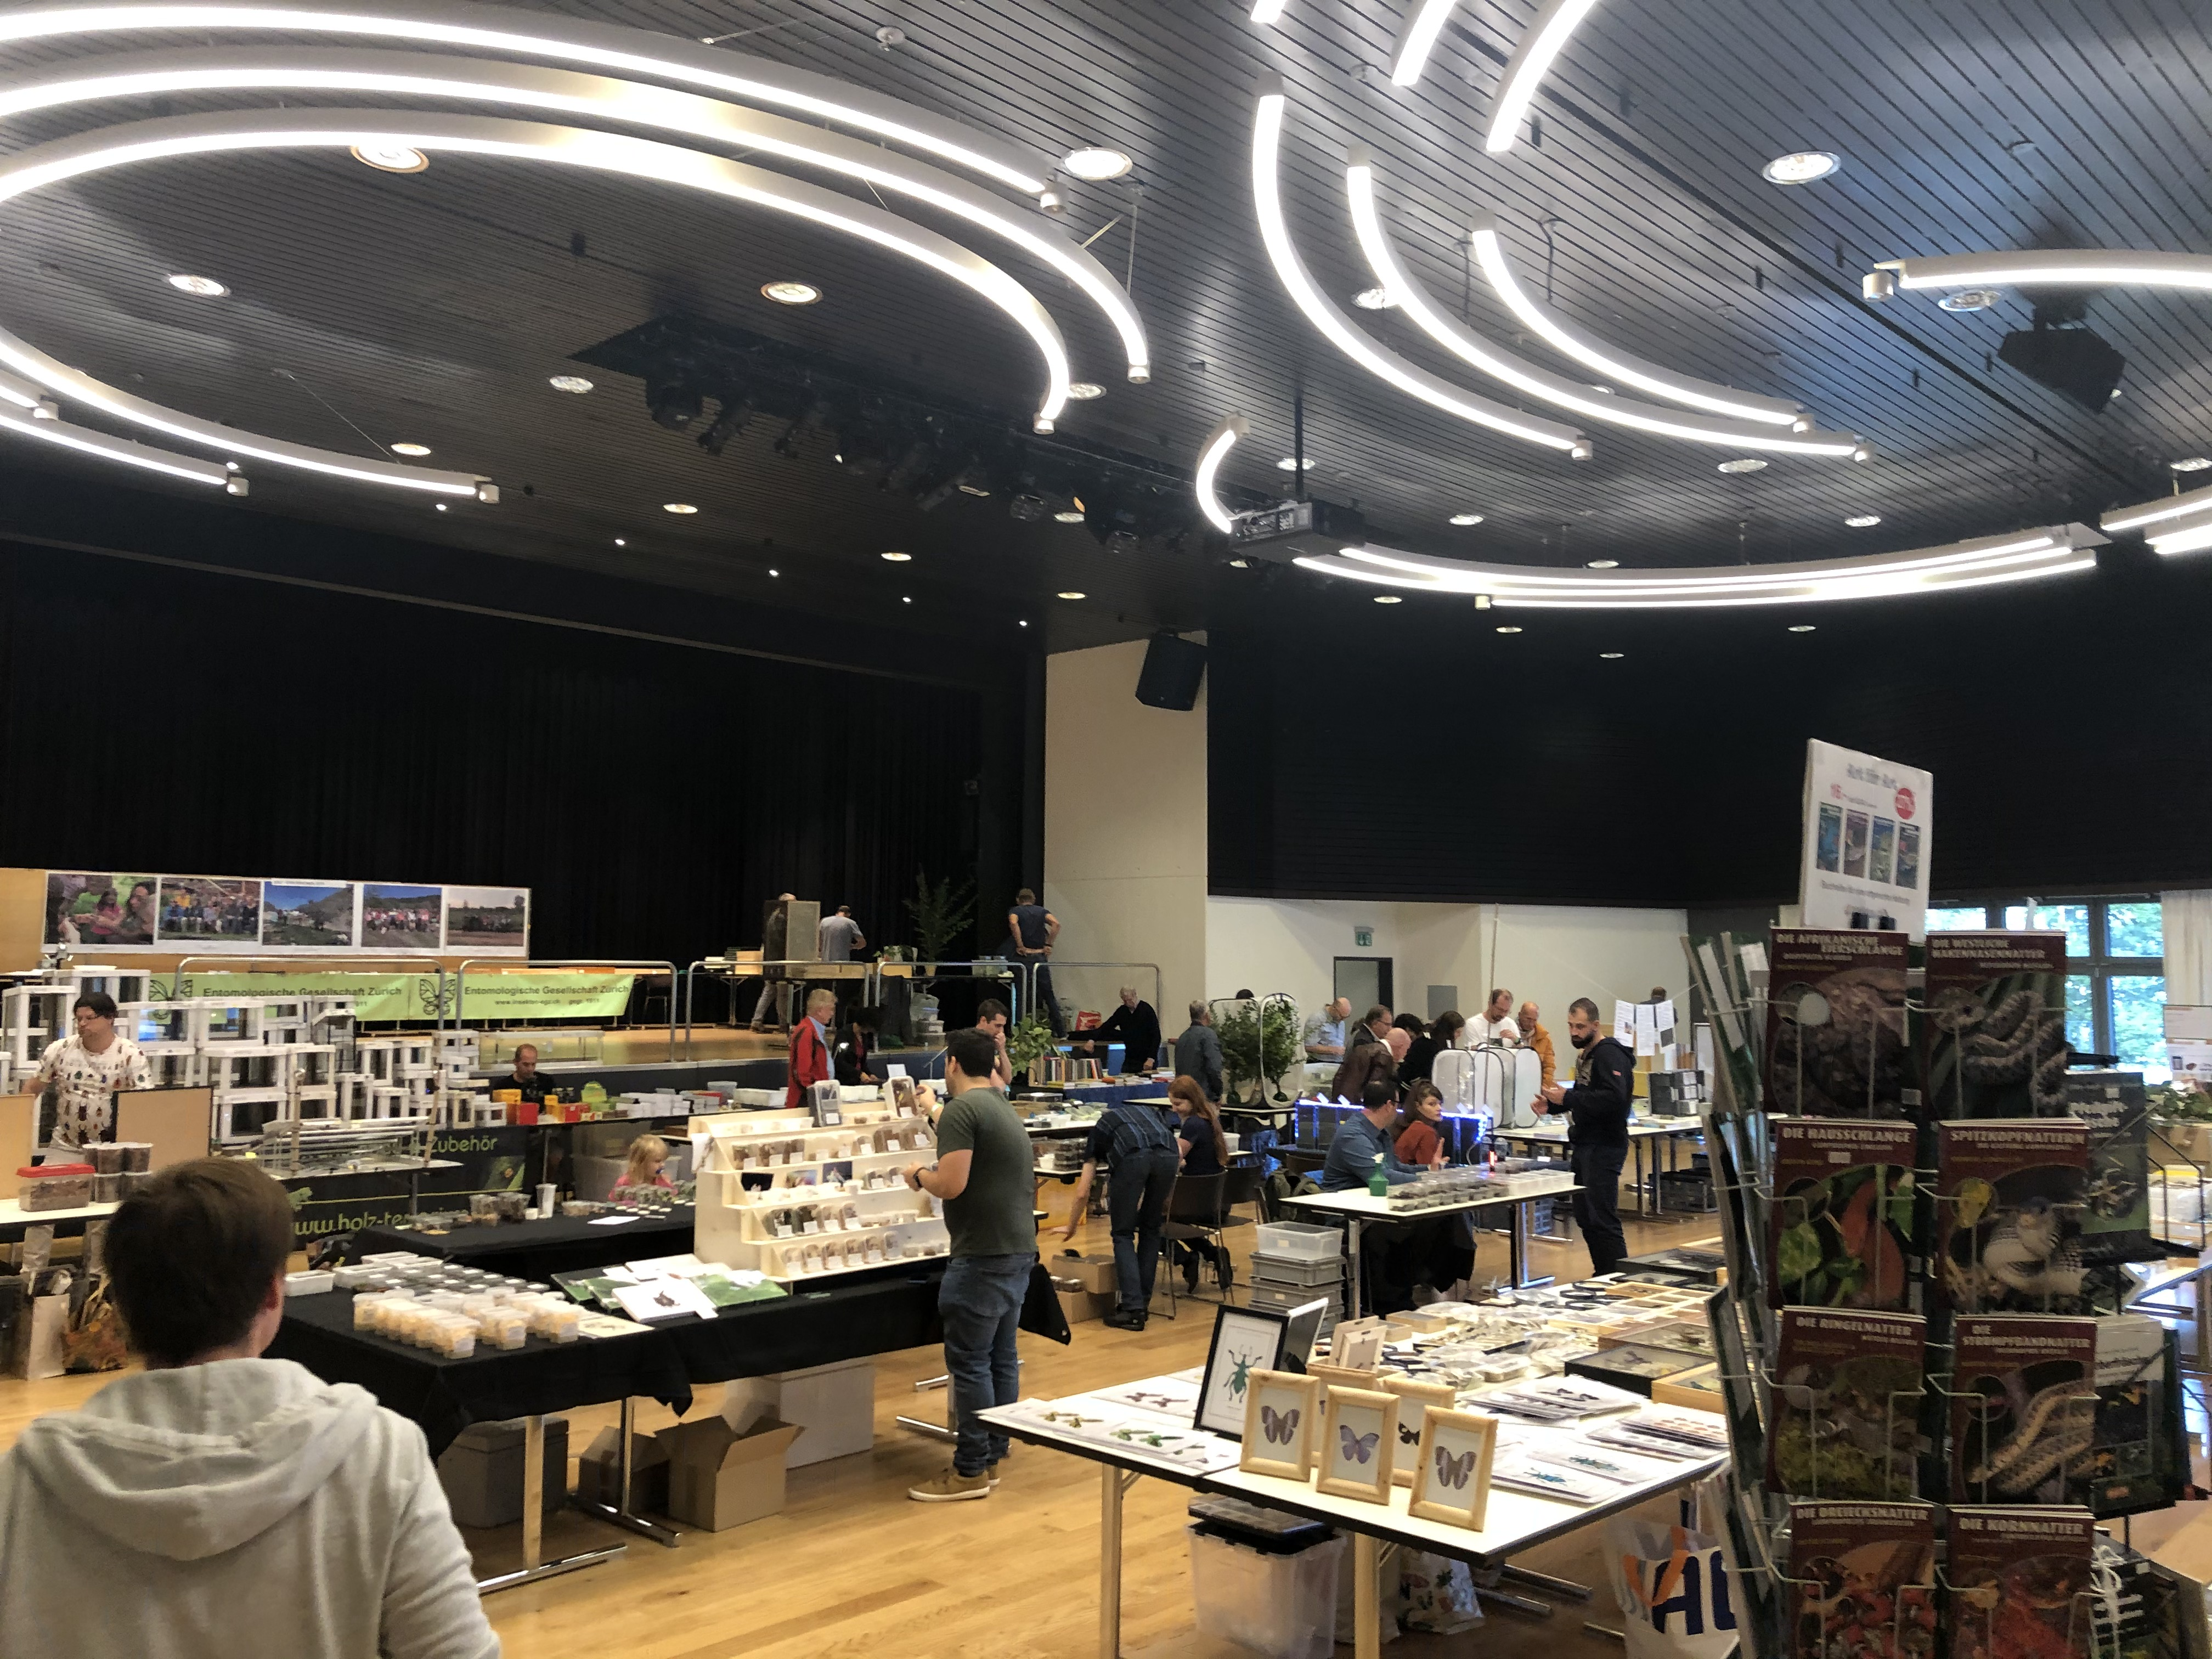 View of the insect fair in Kloten, Switzerland 2019